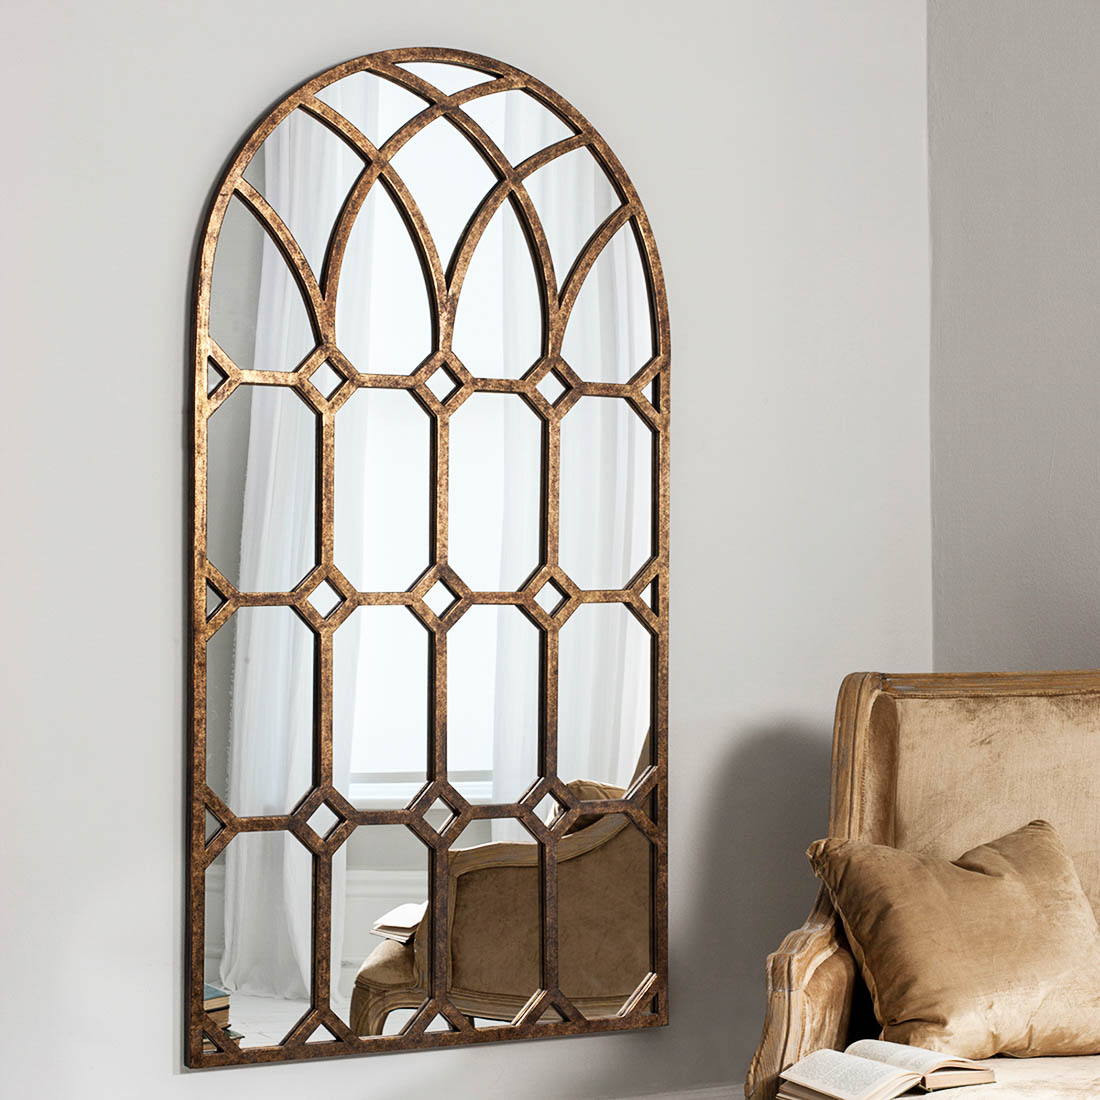 Bronze Gothic Arched Window Wall Mirror With Metal Arch Window Wall Mirrors (Image 4 of 20)